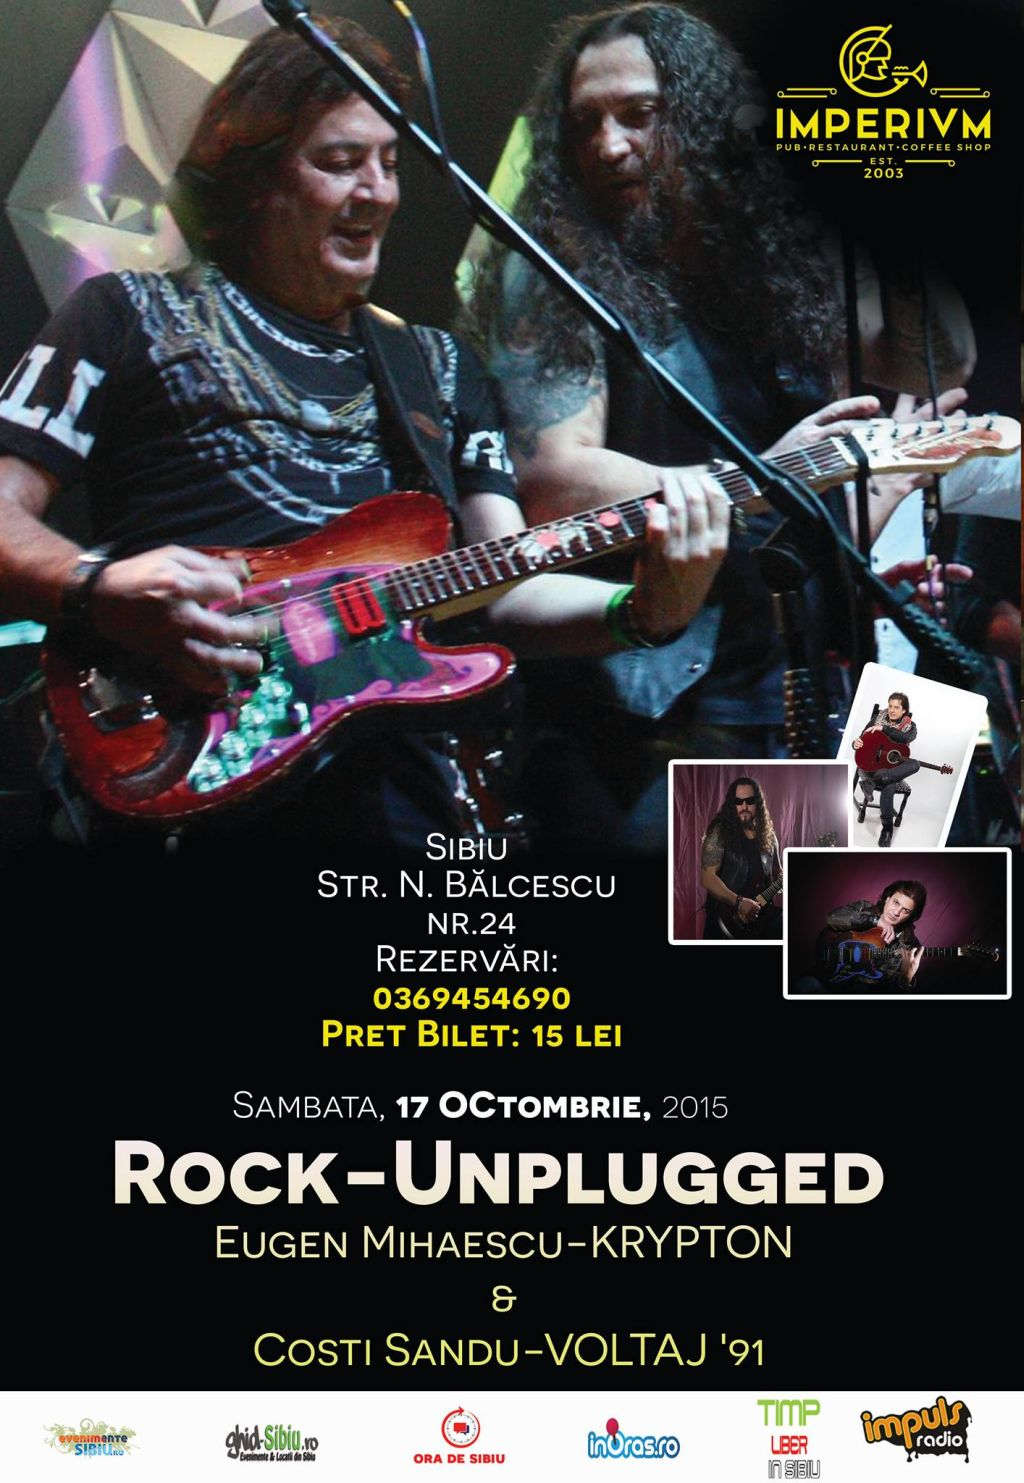 Rock-Unplugged - Eugen Mihaescu-KRYPTON si Costi Sandu-VOLTAJ '91""